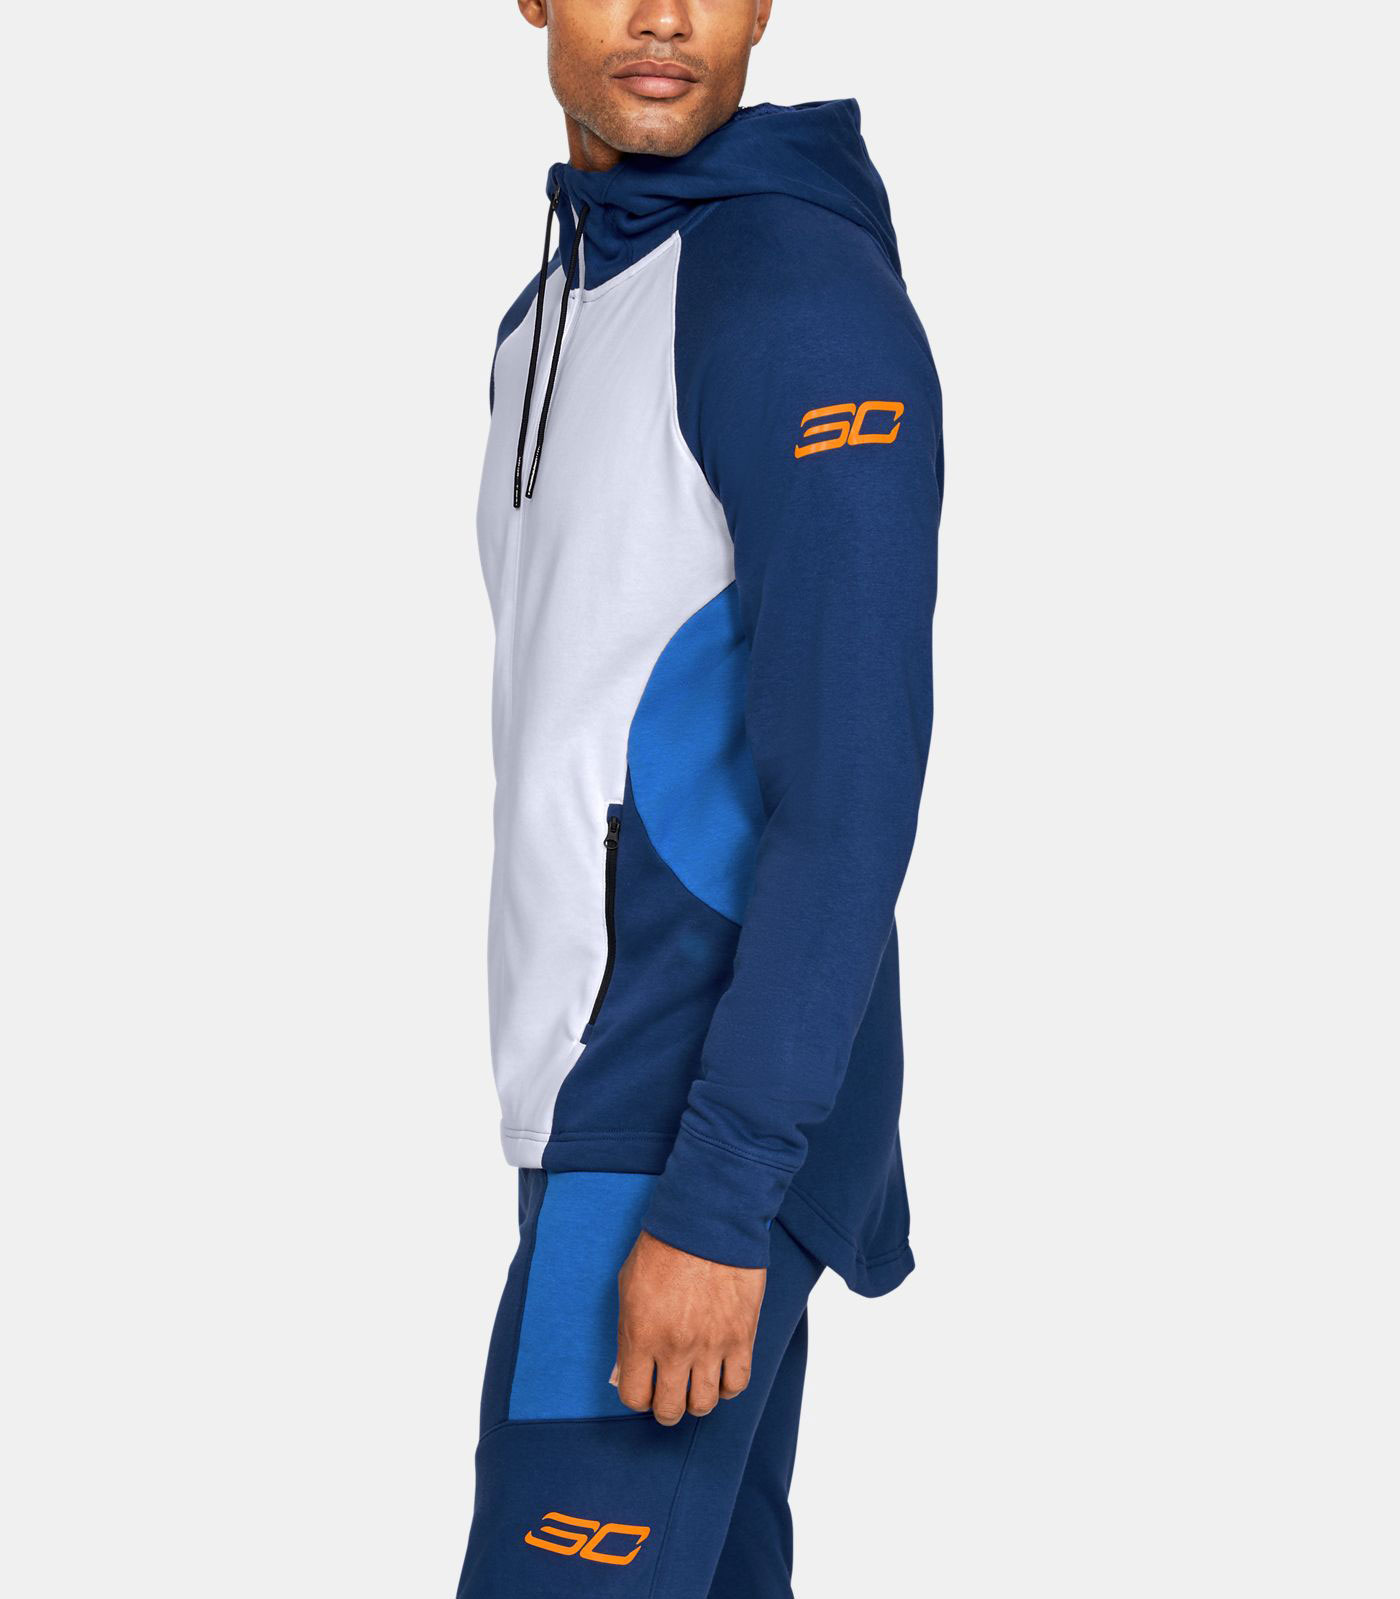 curry-7-super-soaker-hoodie-match-2